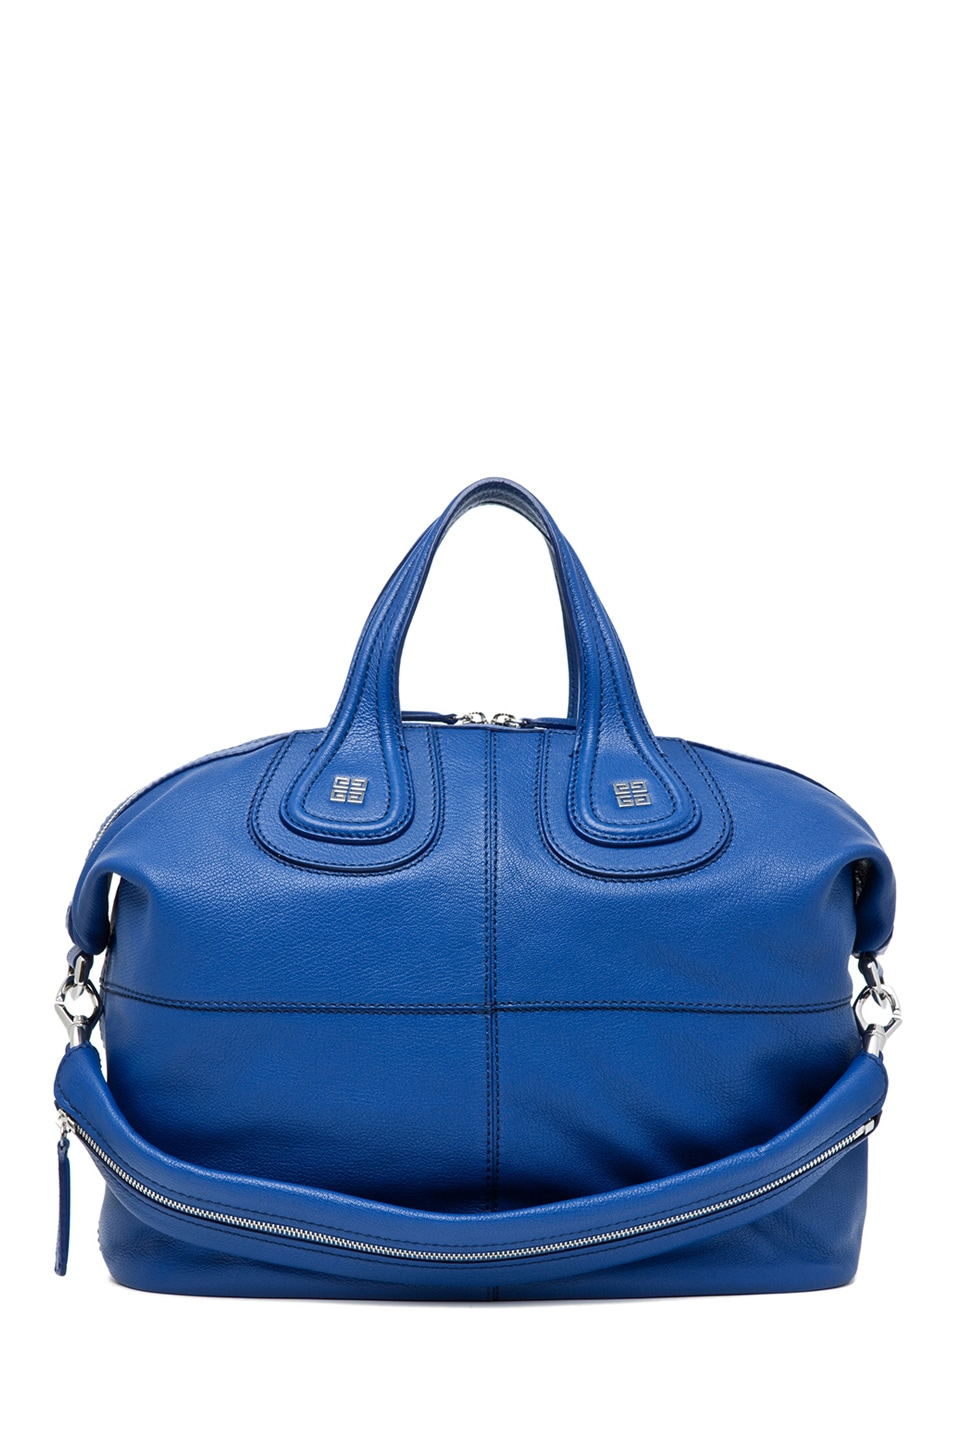 Image 1 of GIVENCHY Nightingale Medium in Moroccan Blue